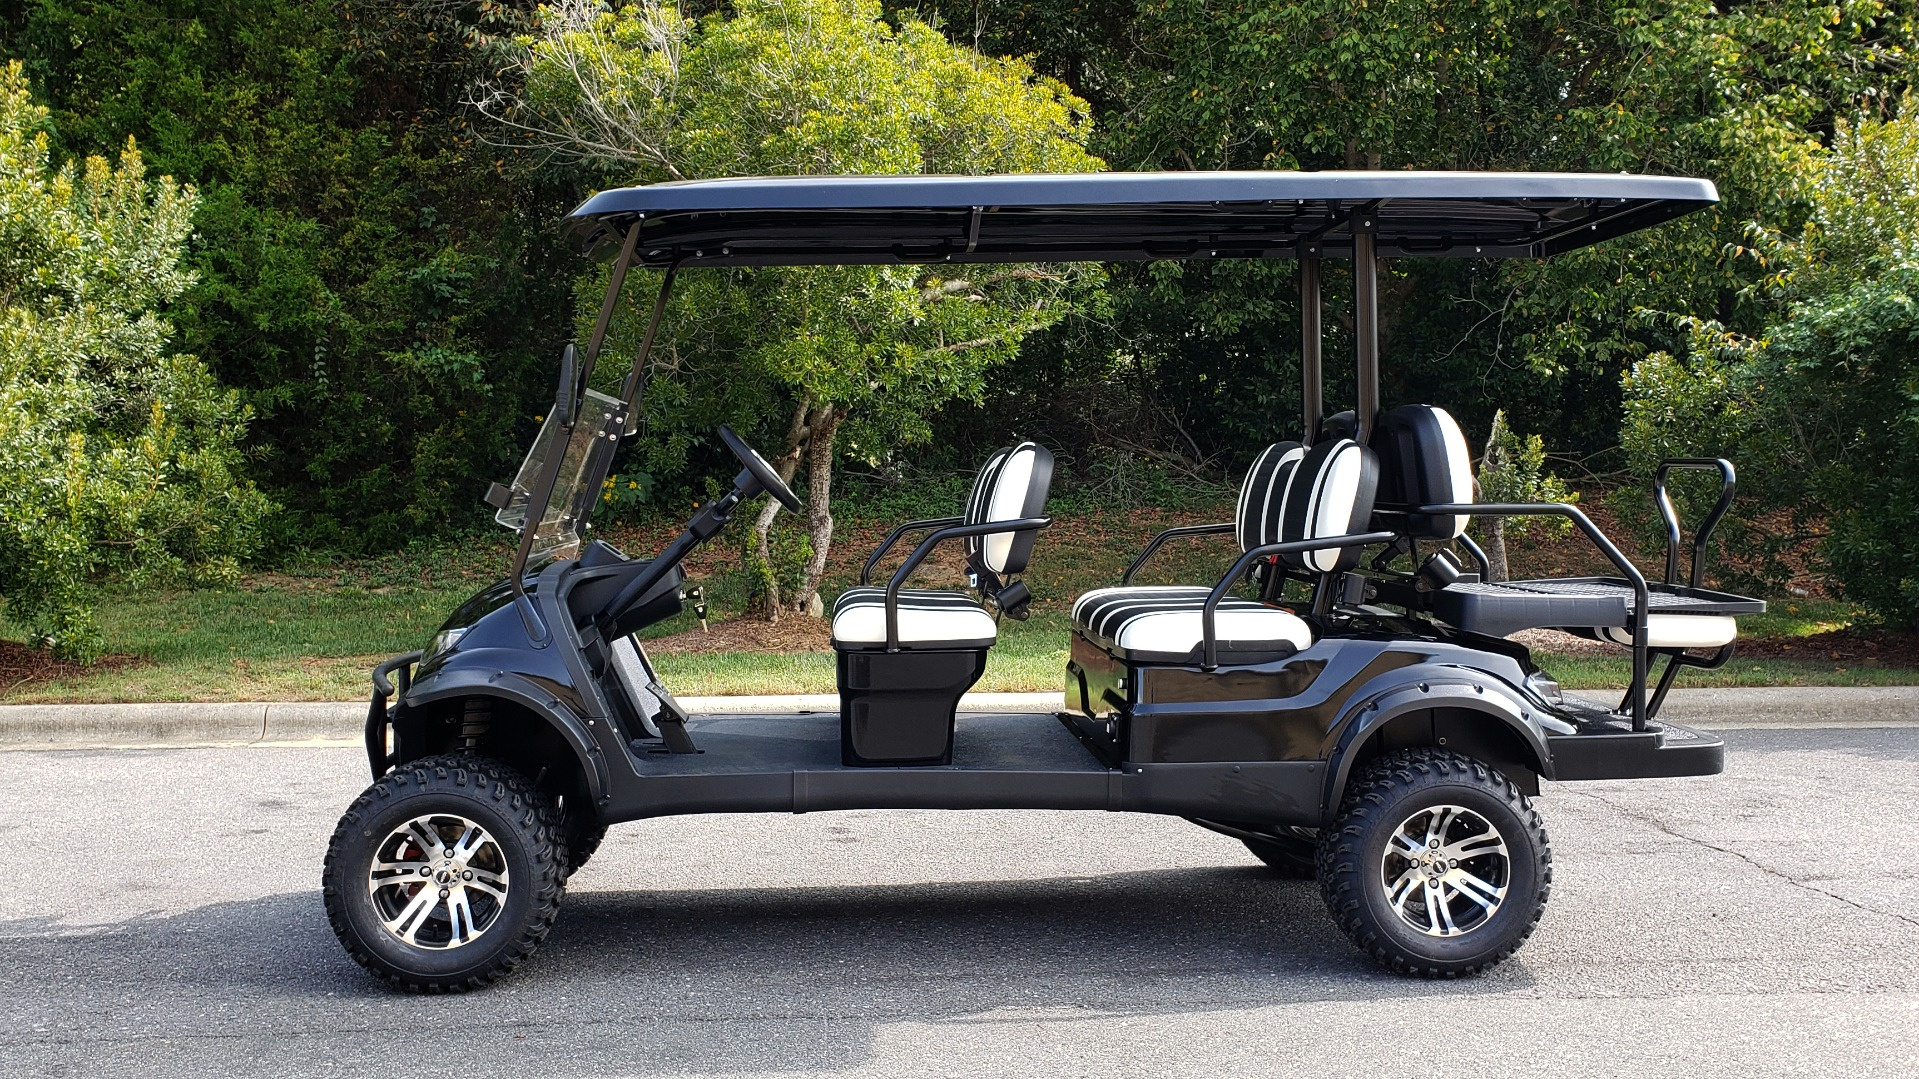 Used 2020 ICON I60L ELECTRIC CAR 3-ROW/6-PASSENGER/LIFTED for sale $10,995 at Formula Imports in Charlotte NC 28227 2